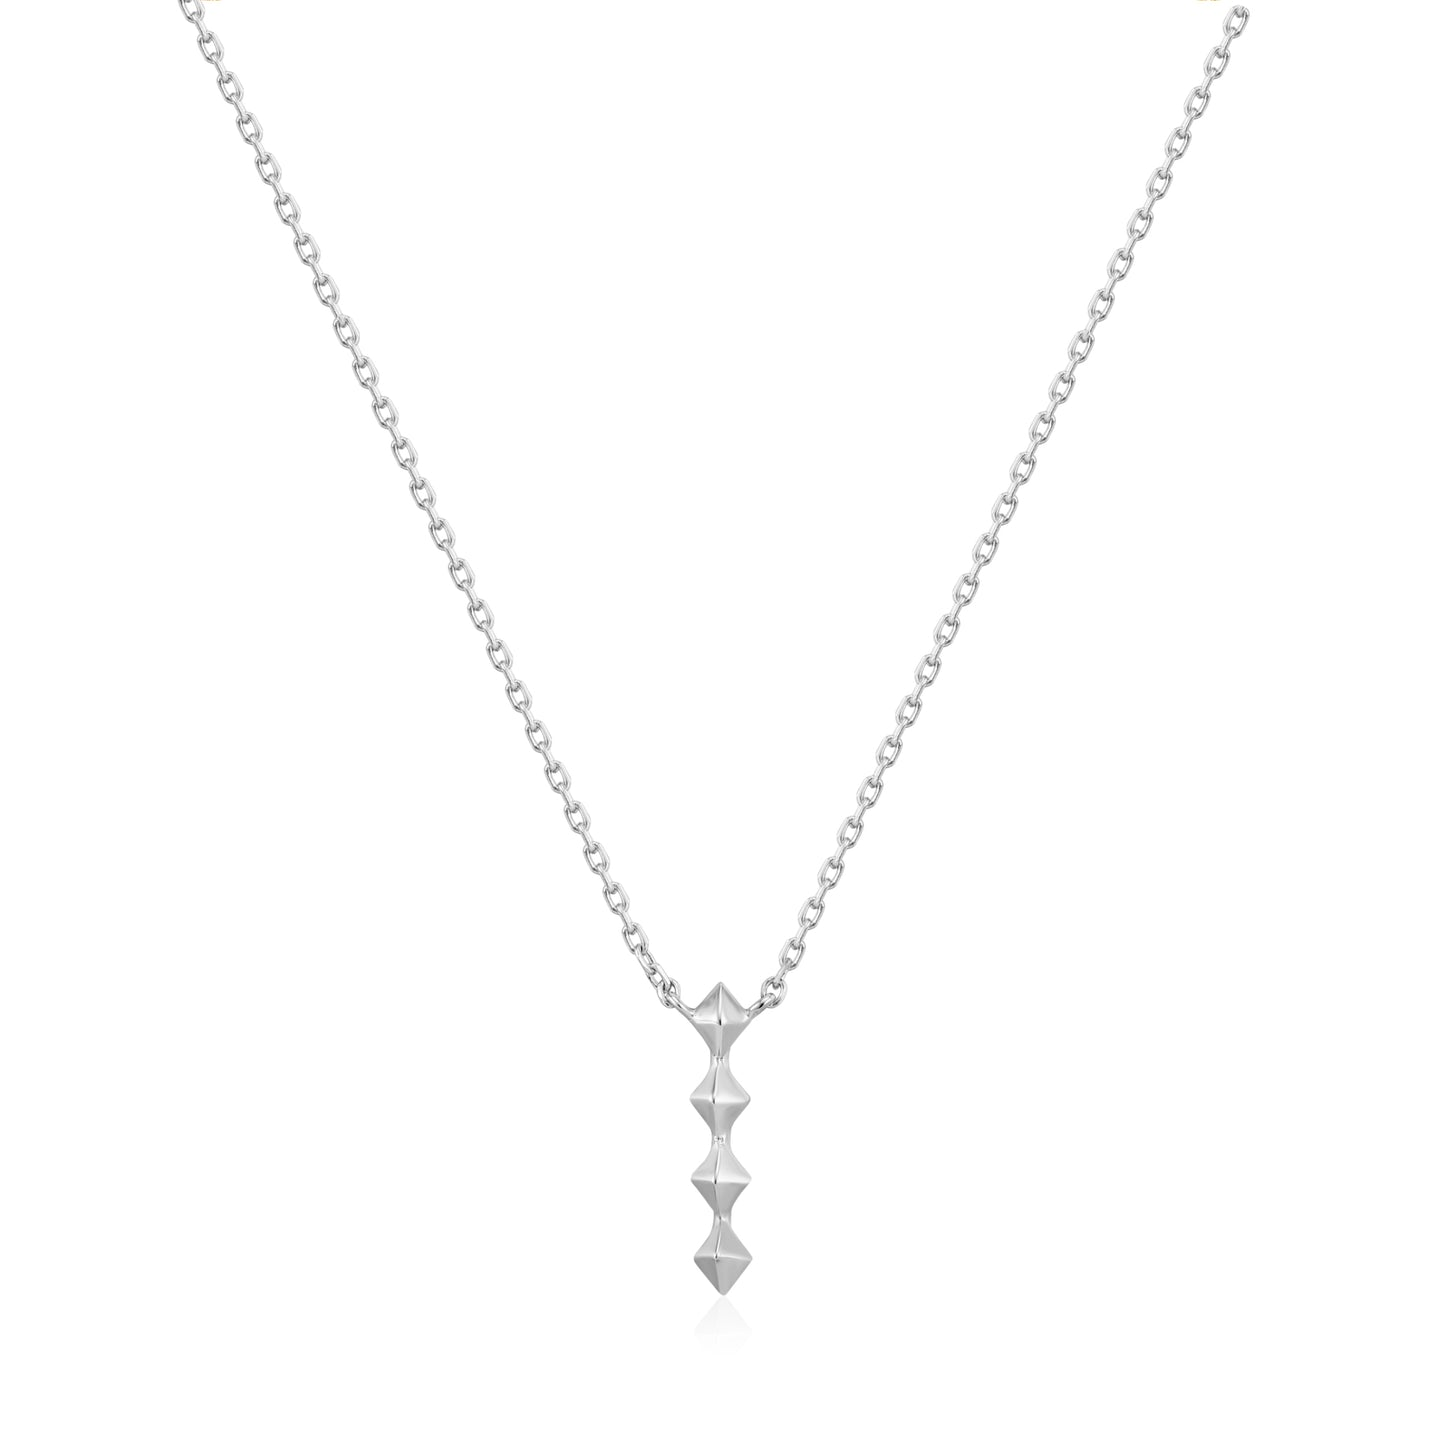 Silver Spike Drop Necklace N025-01H